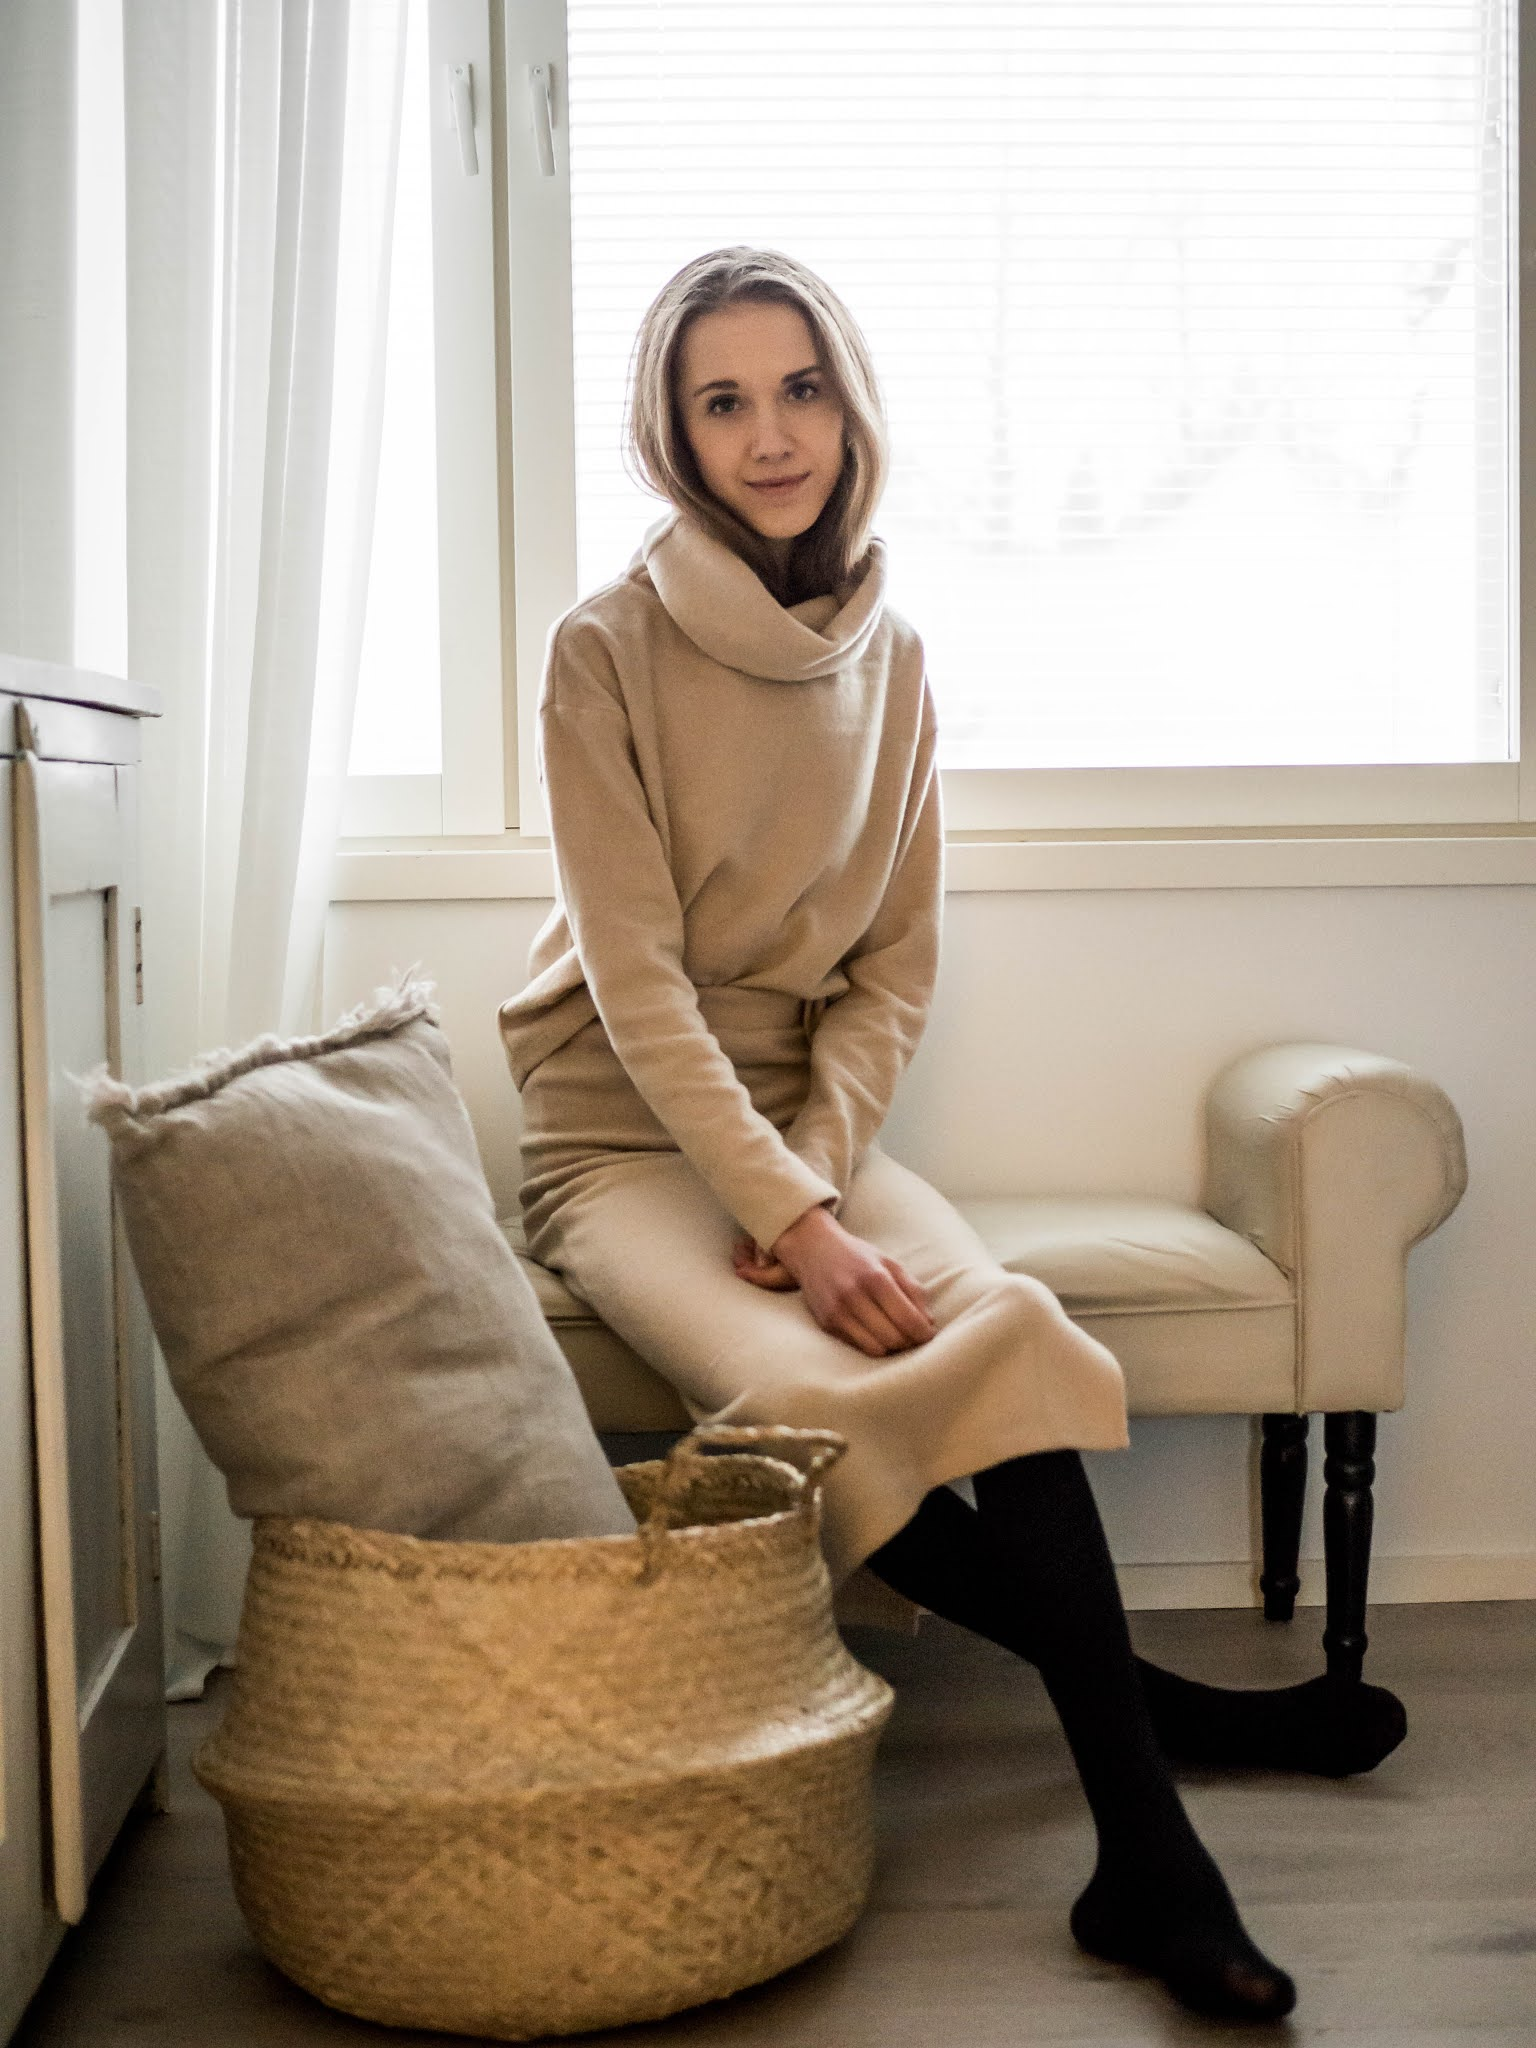 Kokonaan beige asu neuleen ja neulehameen kanssa // All beige outfit with sweater and knitted skirt